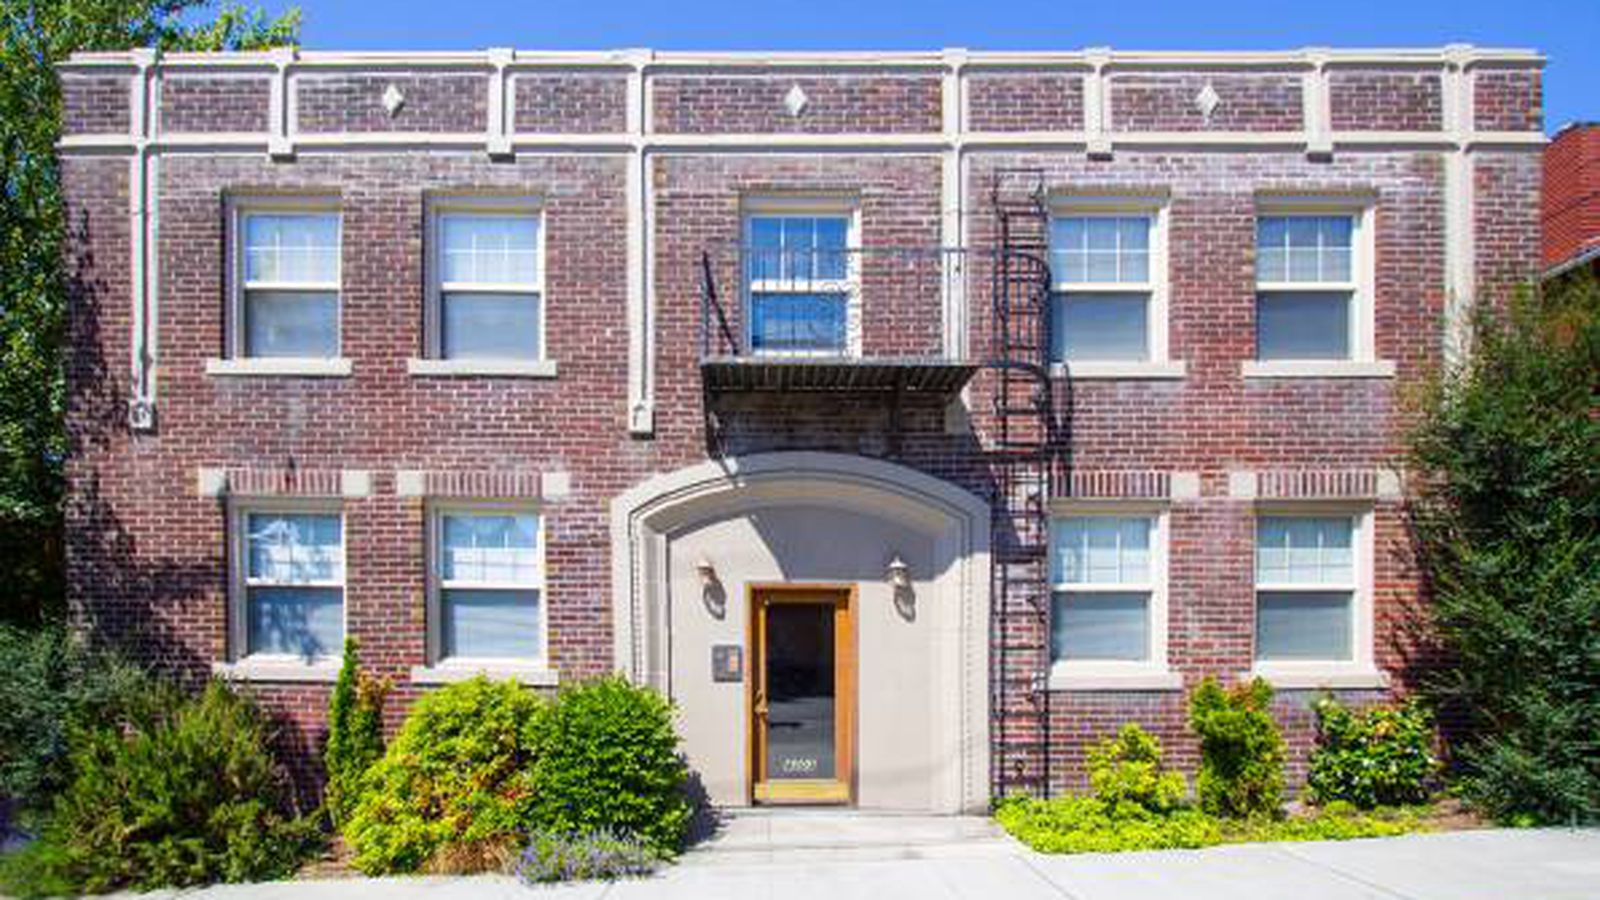 Craiglist Appartments 28 Images 28 Craigslist Apartments For Rent In Apartments For